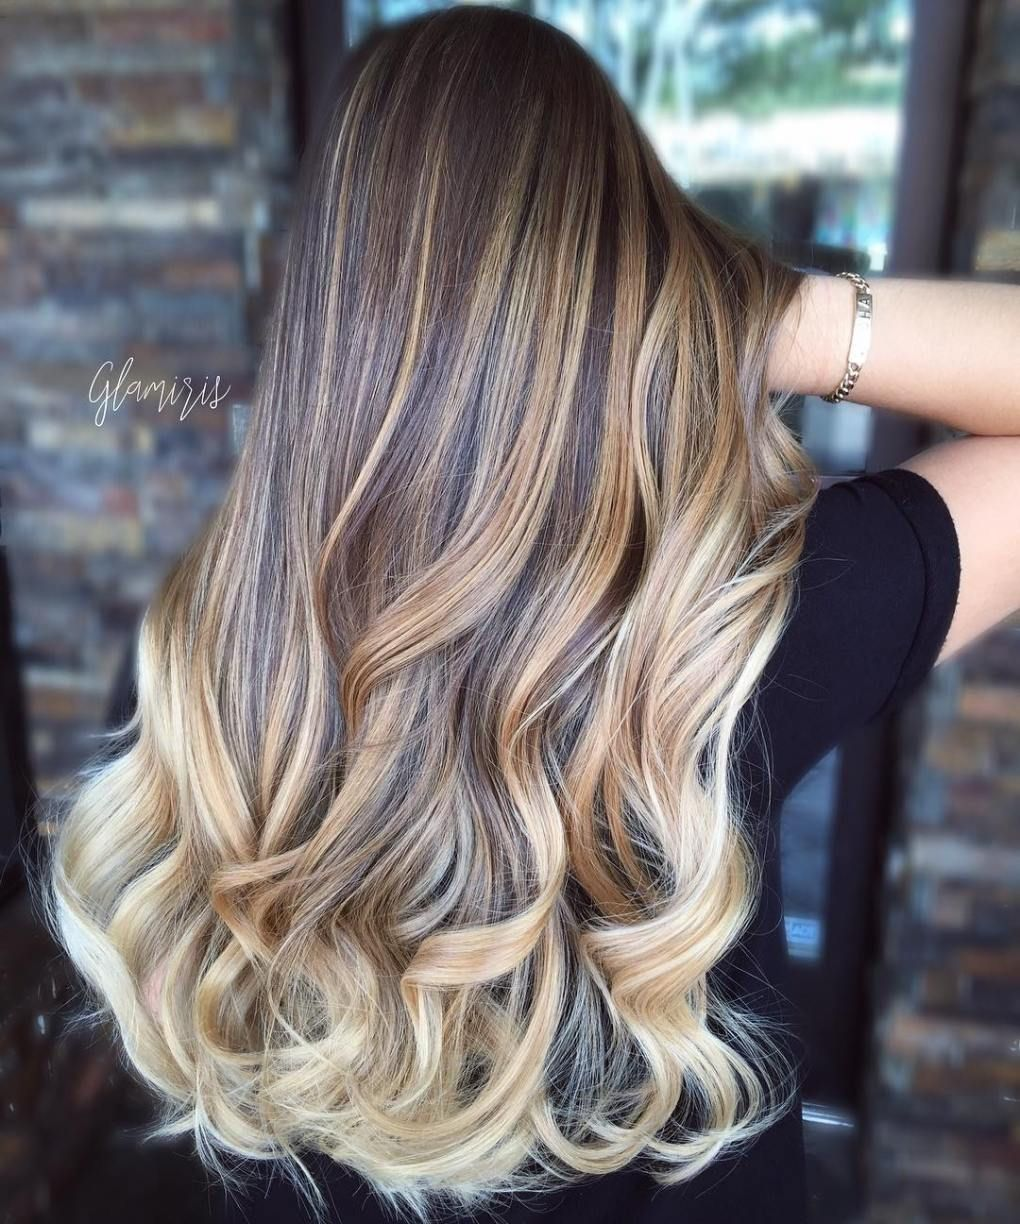 Forum on this topic: 70 Flattering Balayage Hair Color Ideas for , 70-flattering-balayage-hair-color-ideas-for/